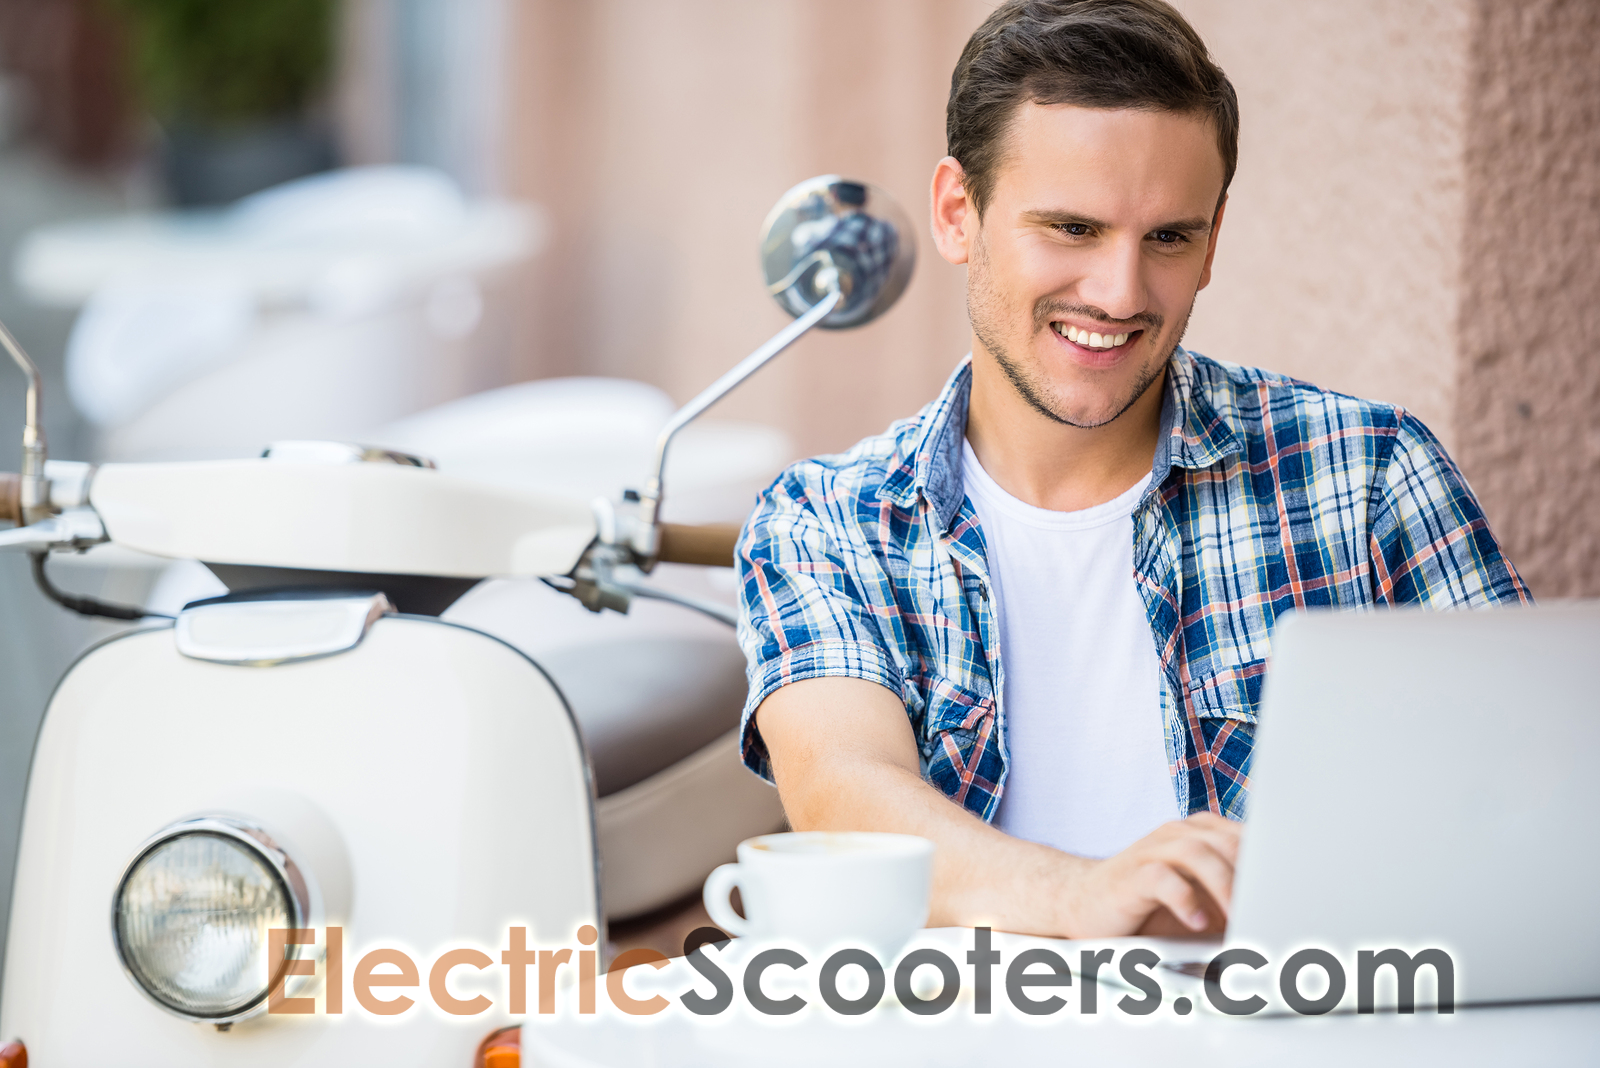 best electric scooters, purchasing online,